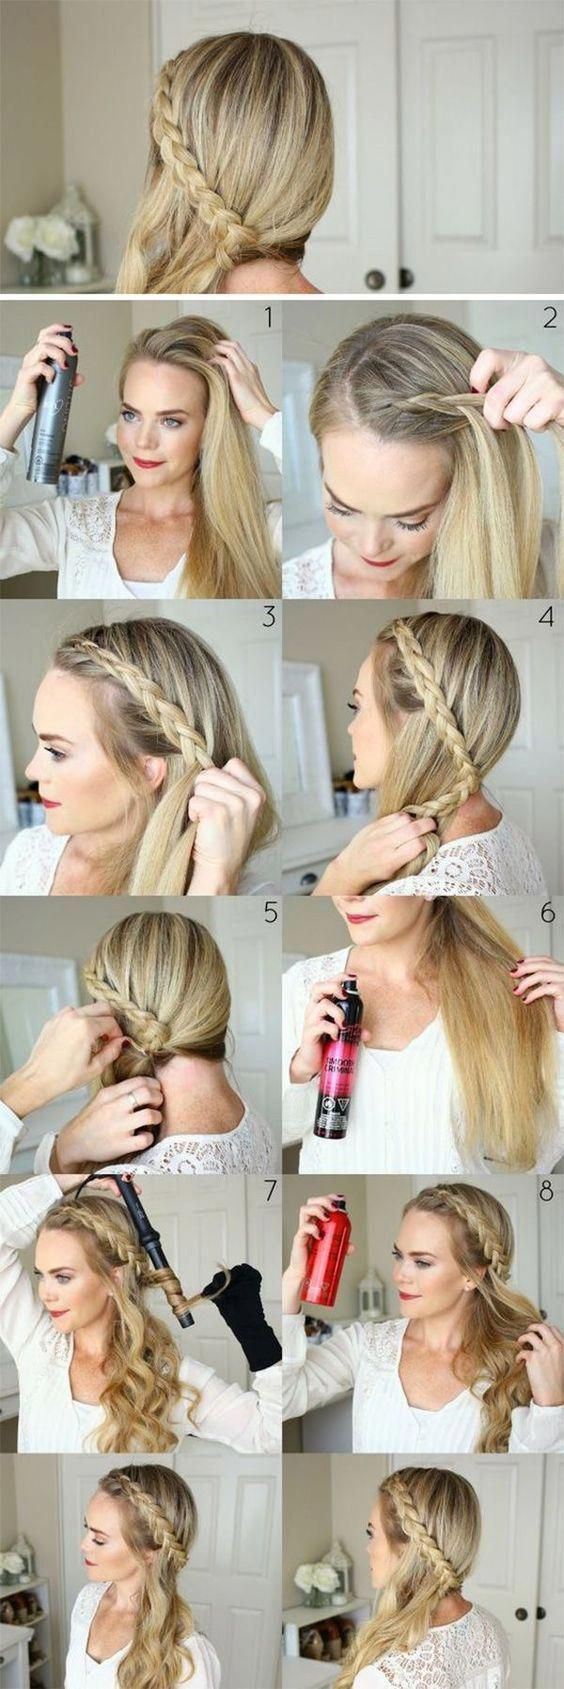 #Busy #Easy #Easy Hairstyles boho #Hairstyle #JeweHairsty #Quick,  #BOHO #Busy #Easy #hairsty...